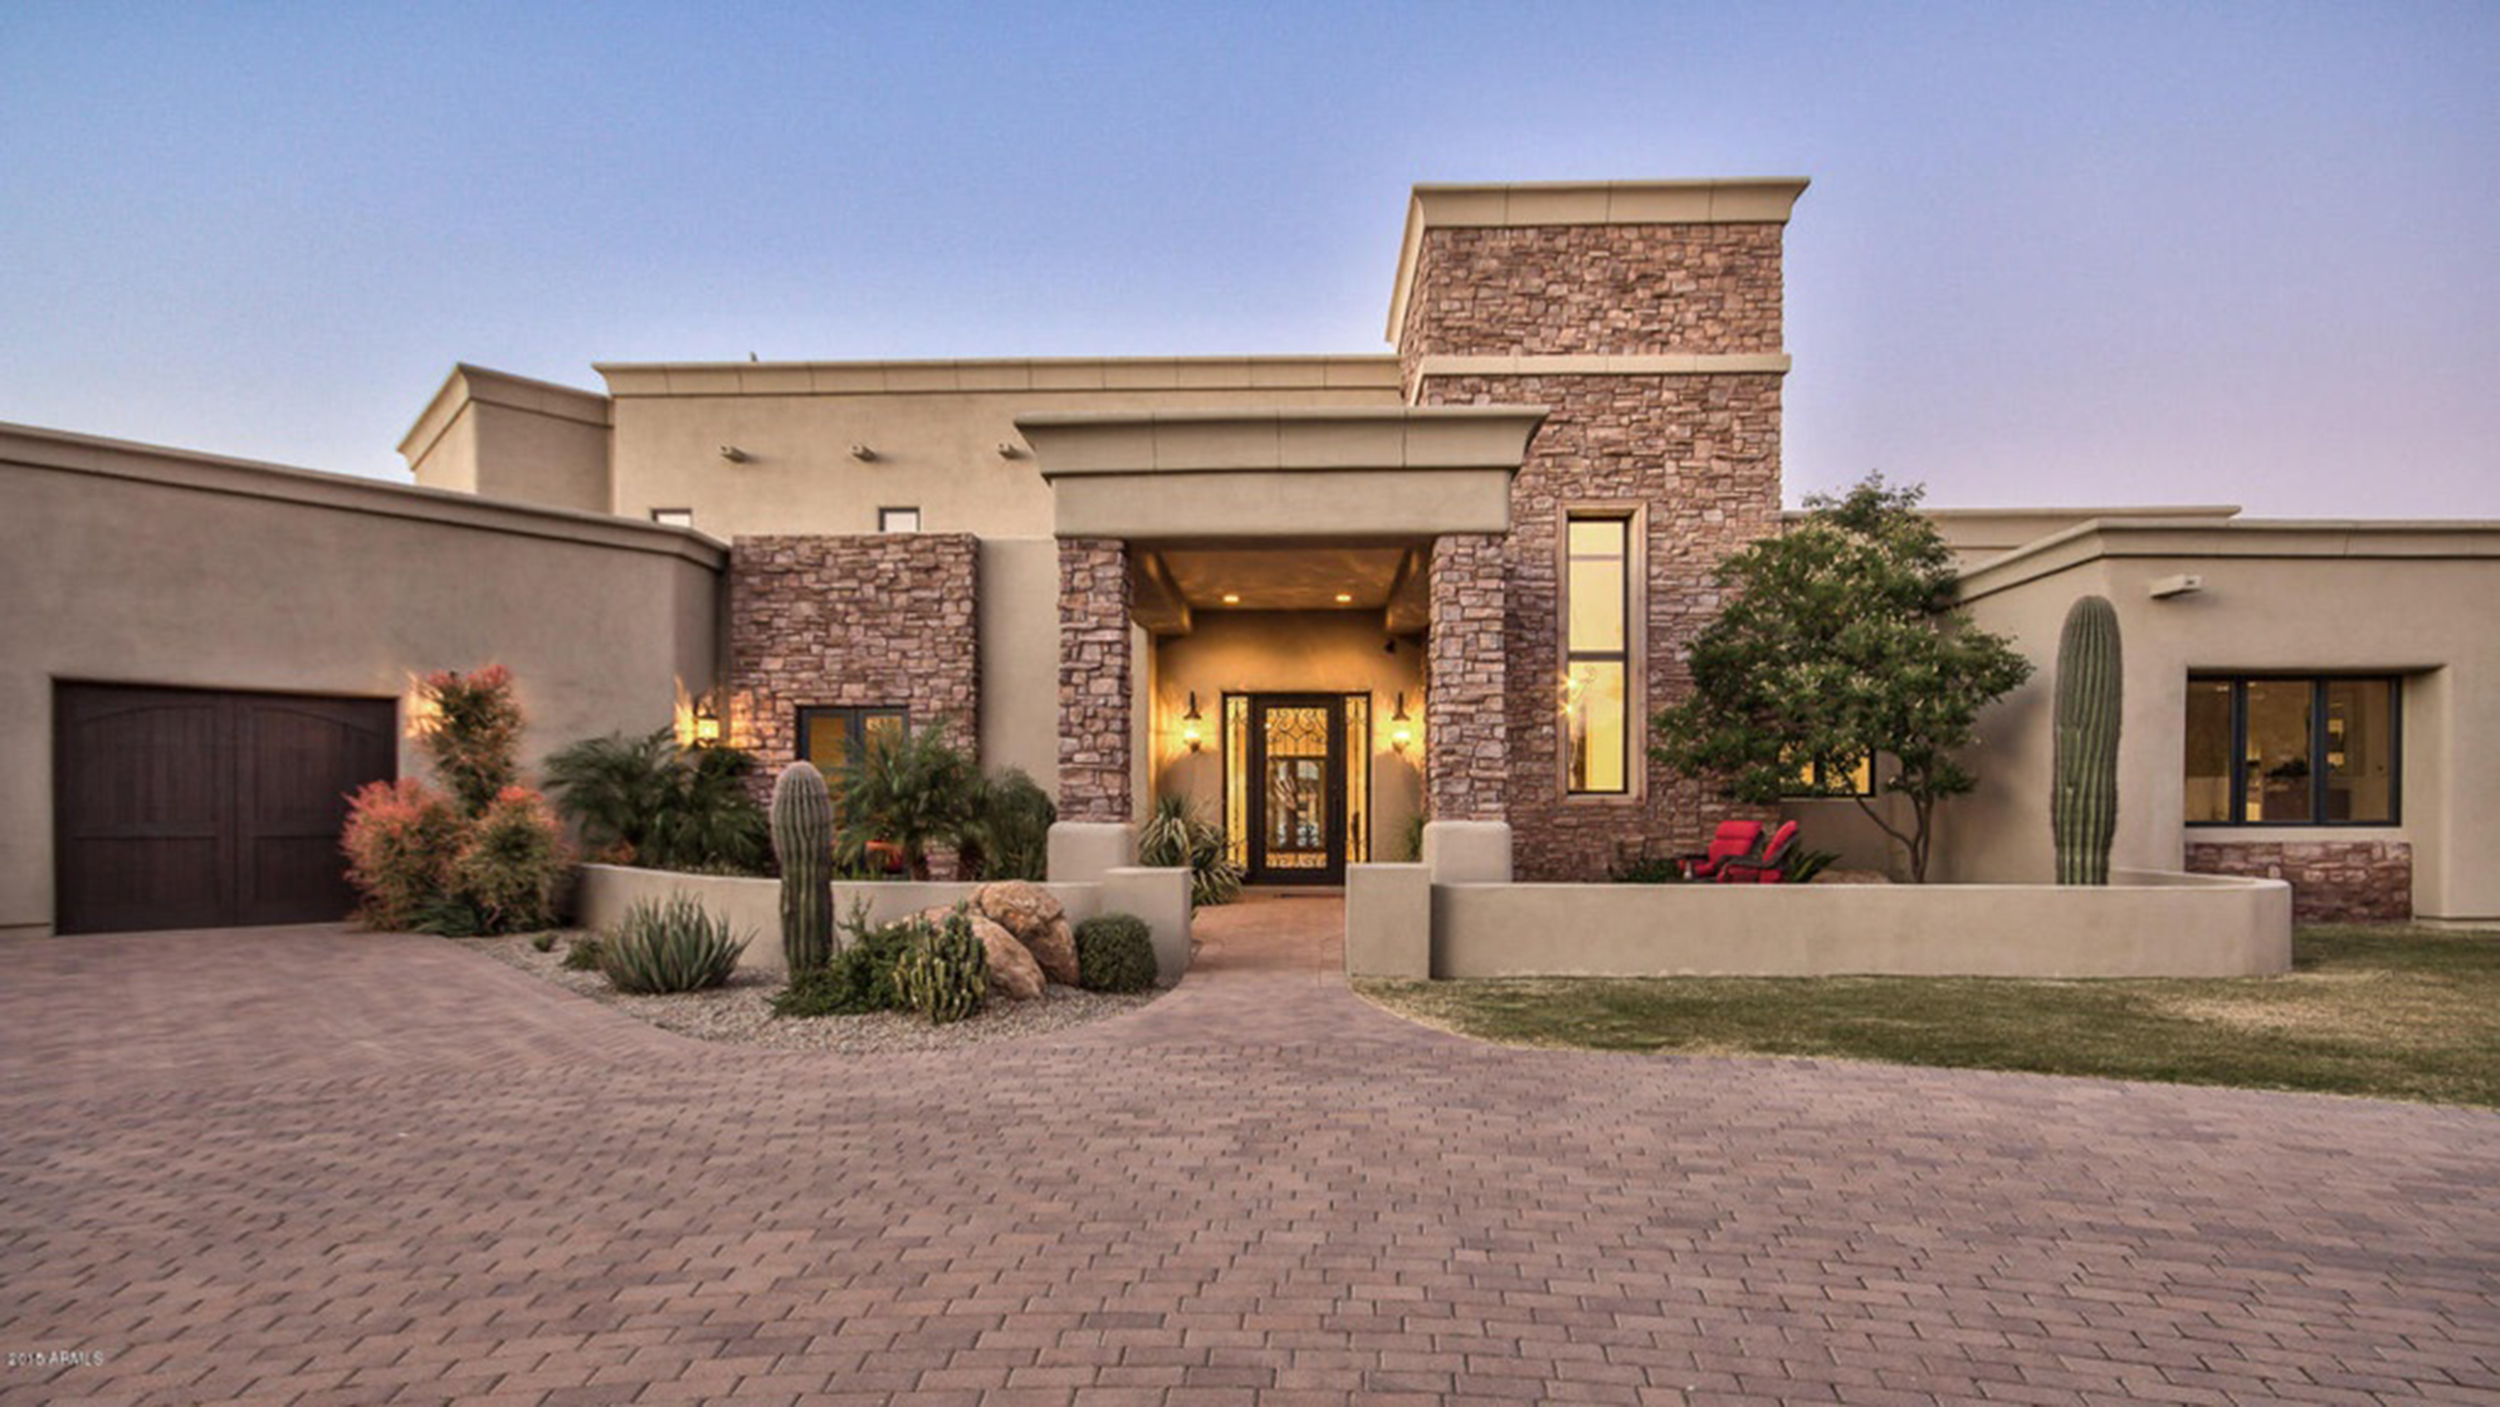 Sarah Palin Is Selling Her Equestrian Arizona Home Take